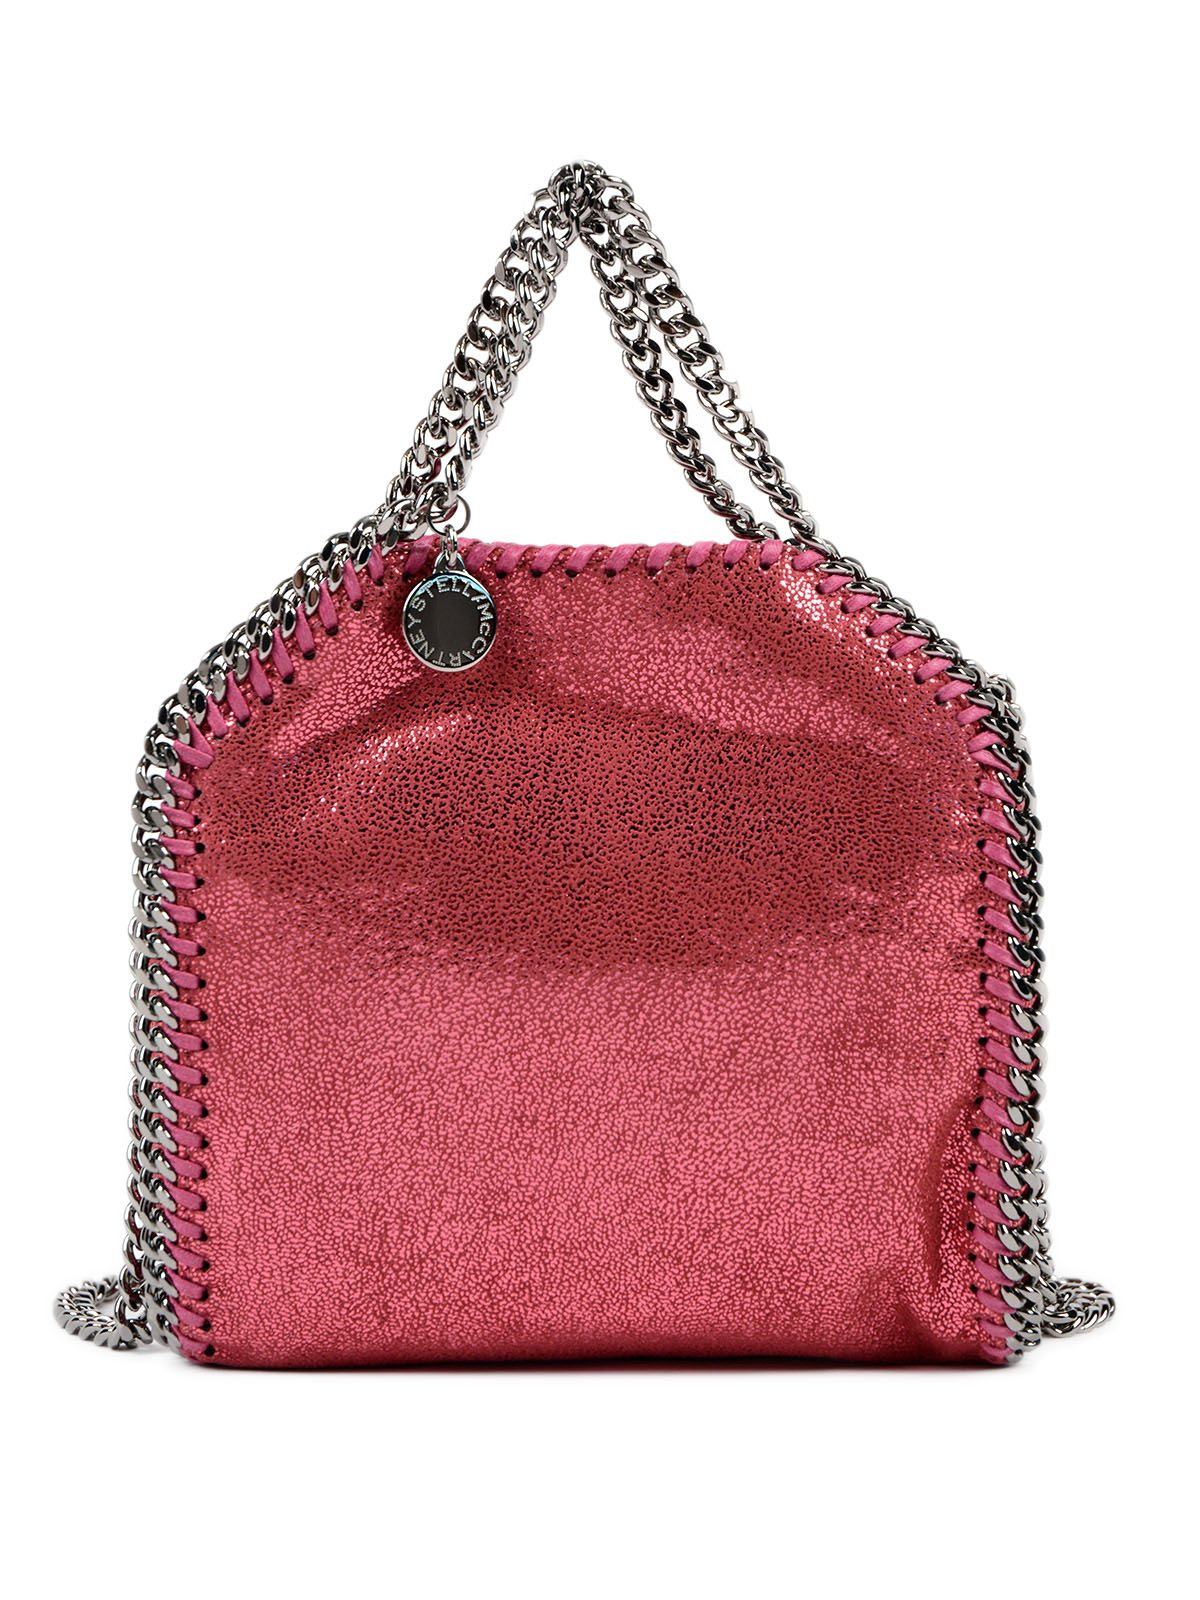 Stella McCartney Tiny Falabella Shiny